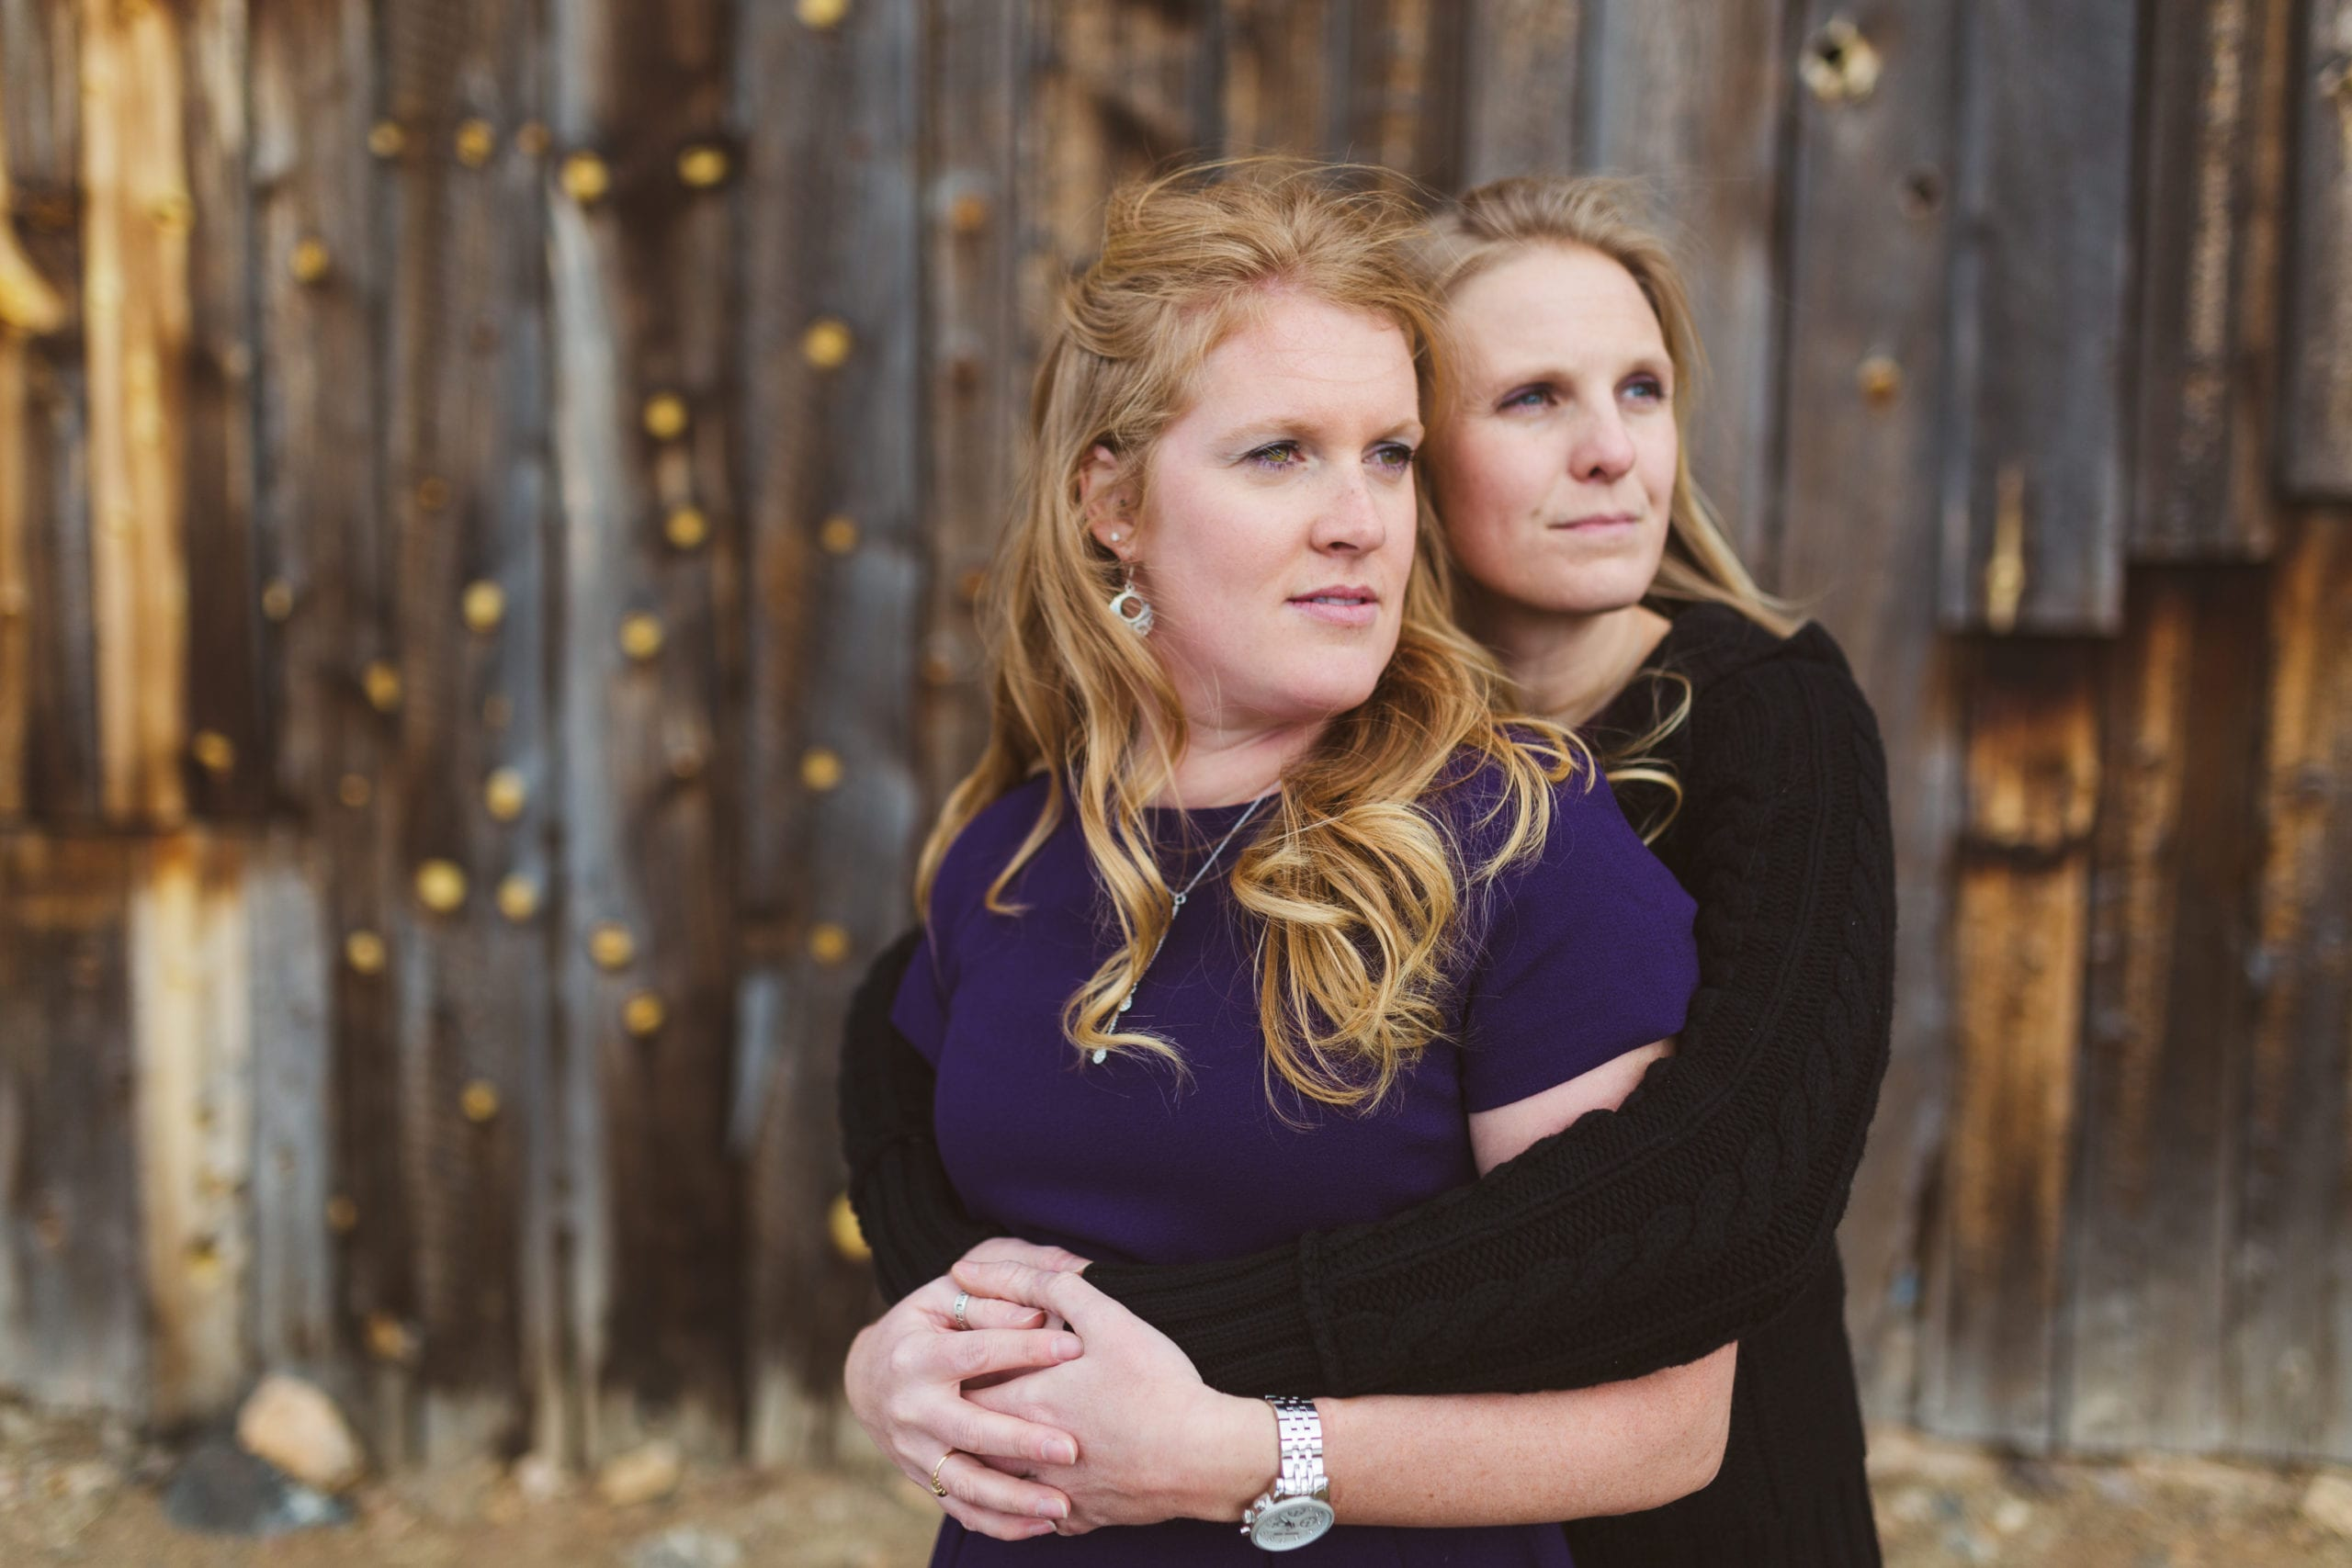 Courtney & Lindsay | Three Sisters Park Engagement Photography | From The Hip Photo